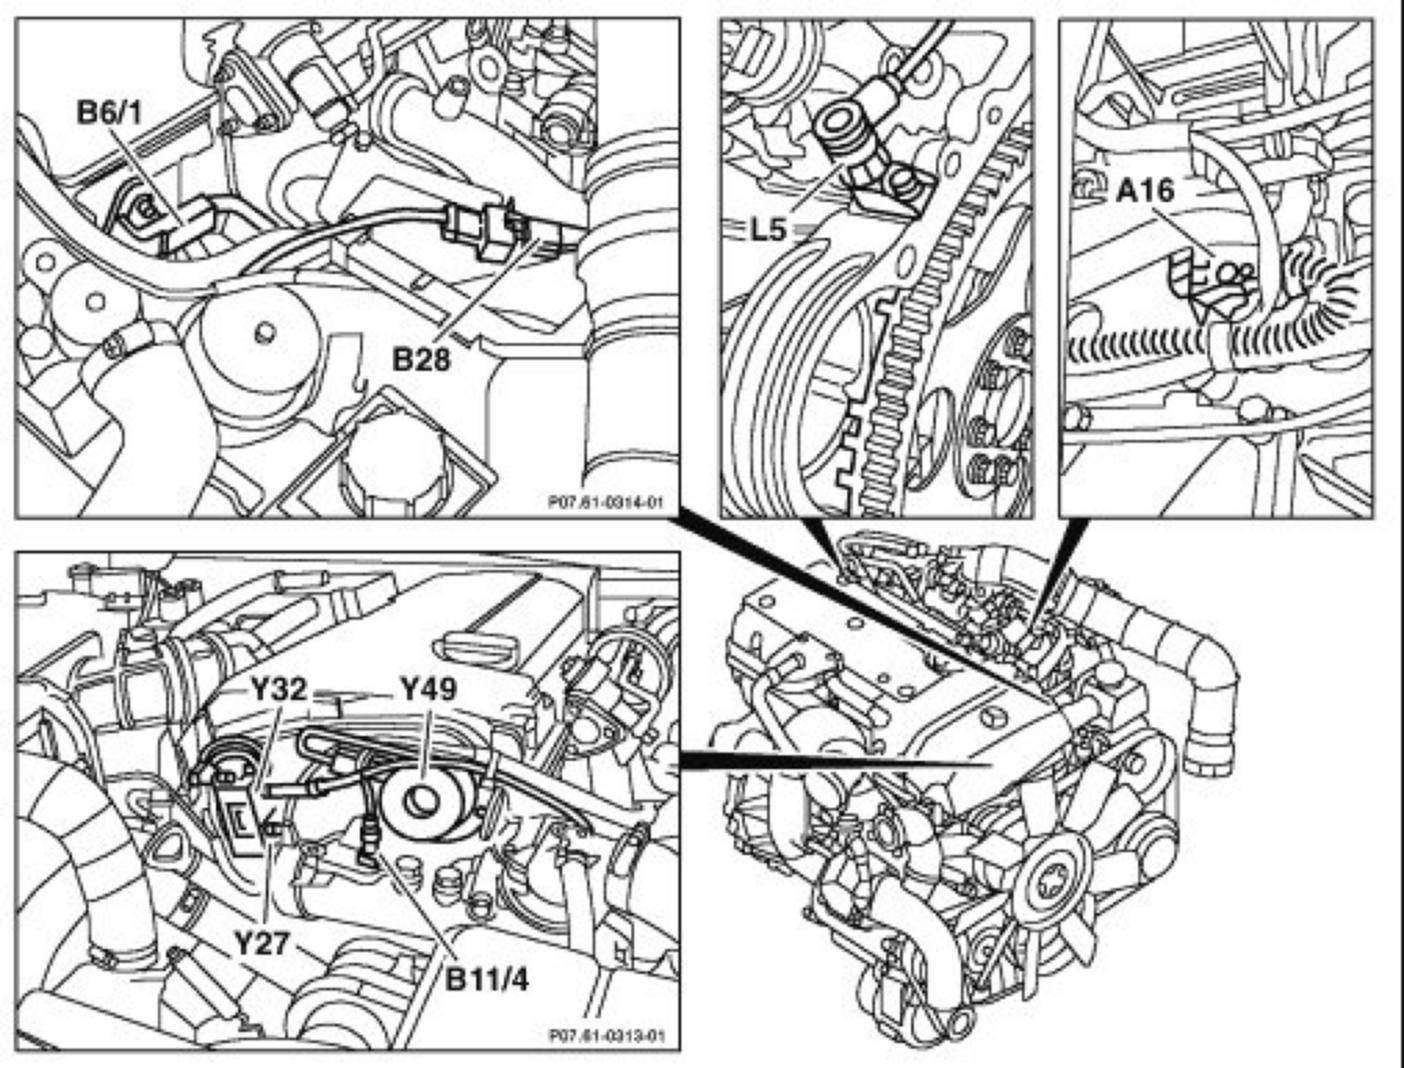 mercedes e320 1997 fuse box location wiring diagram schematic